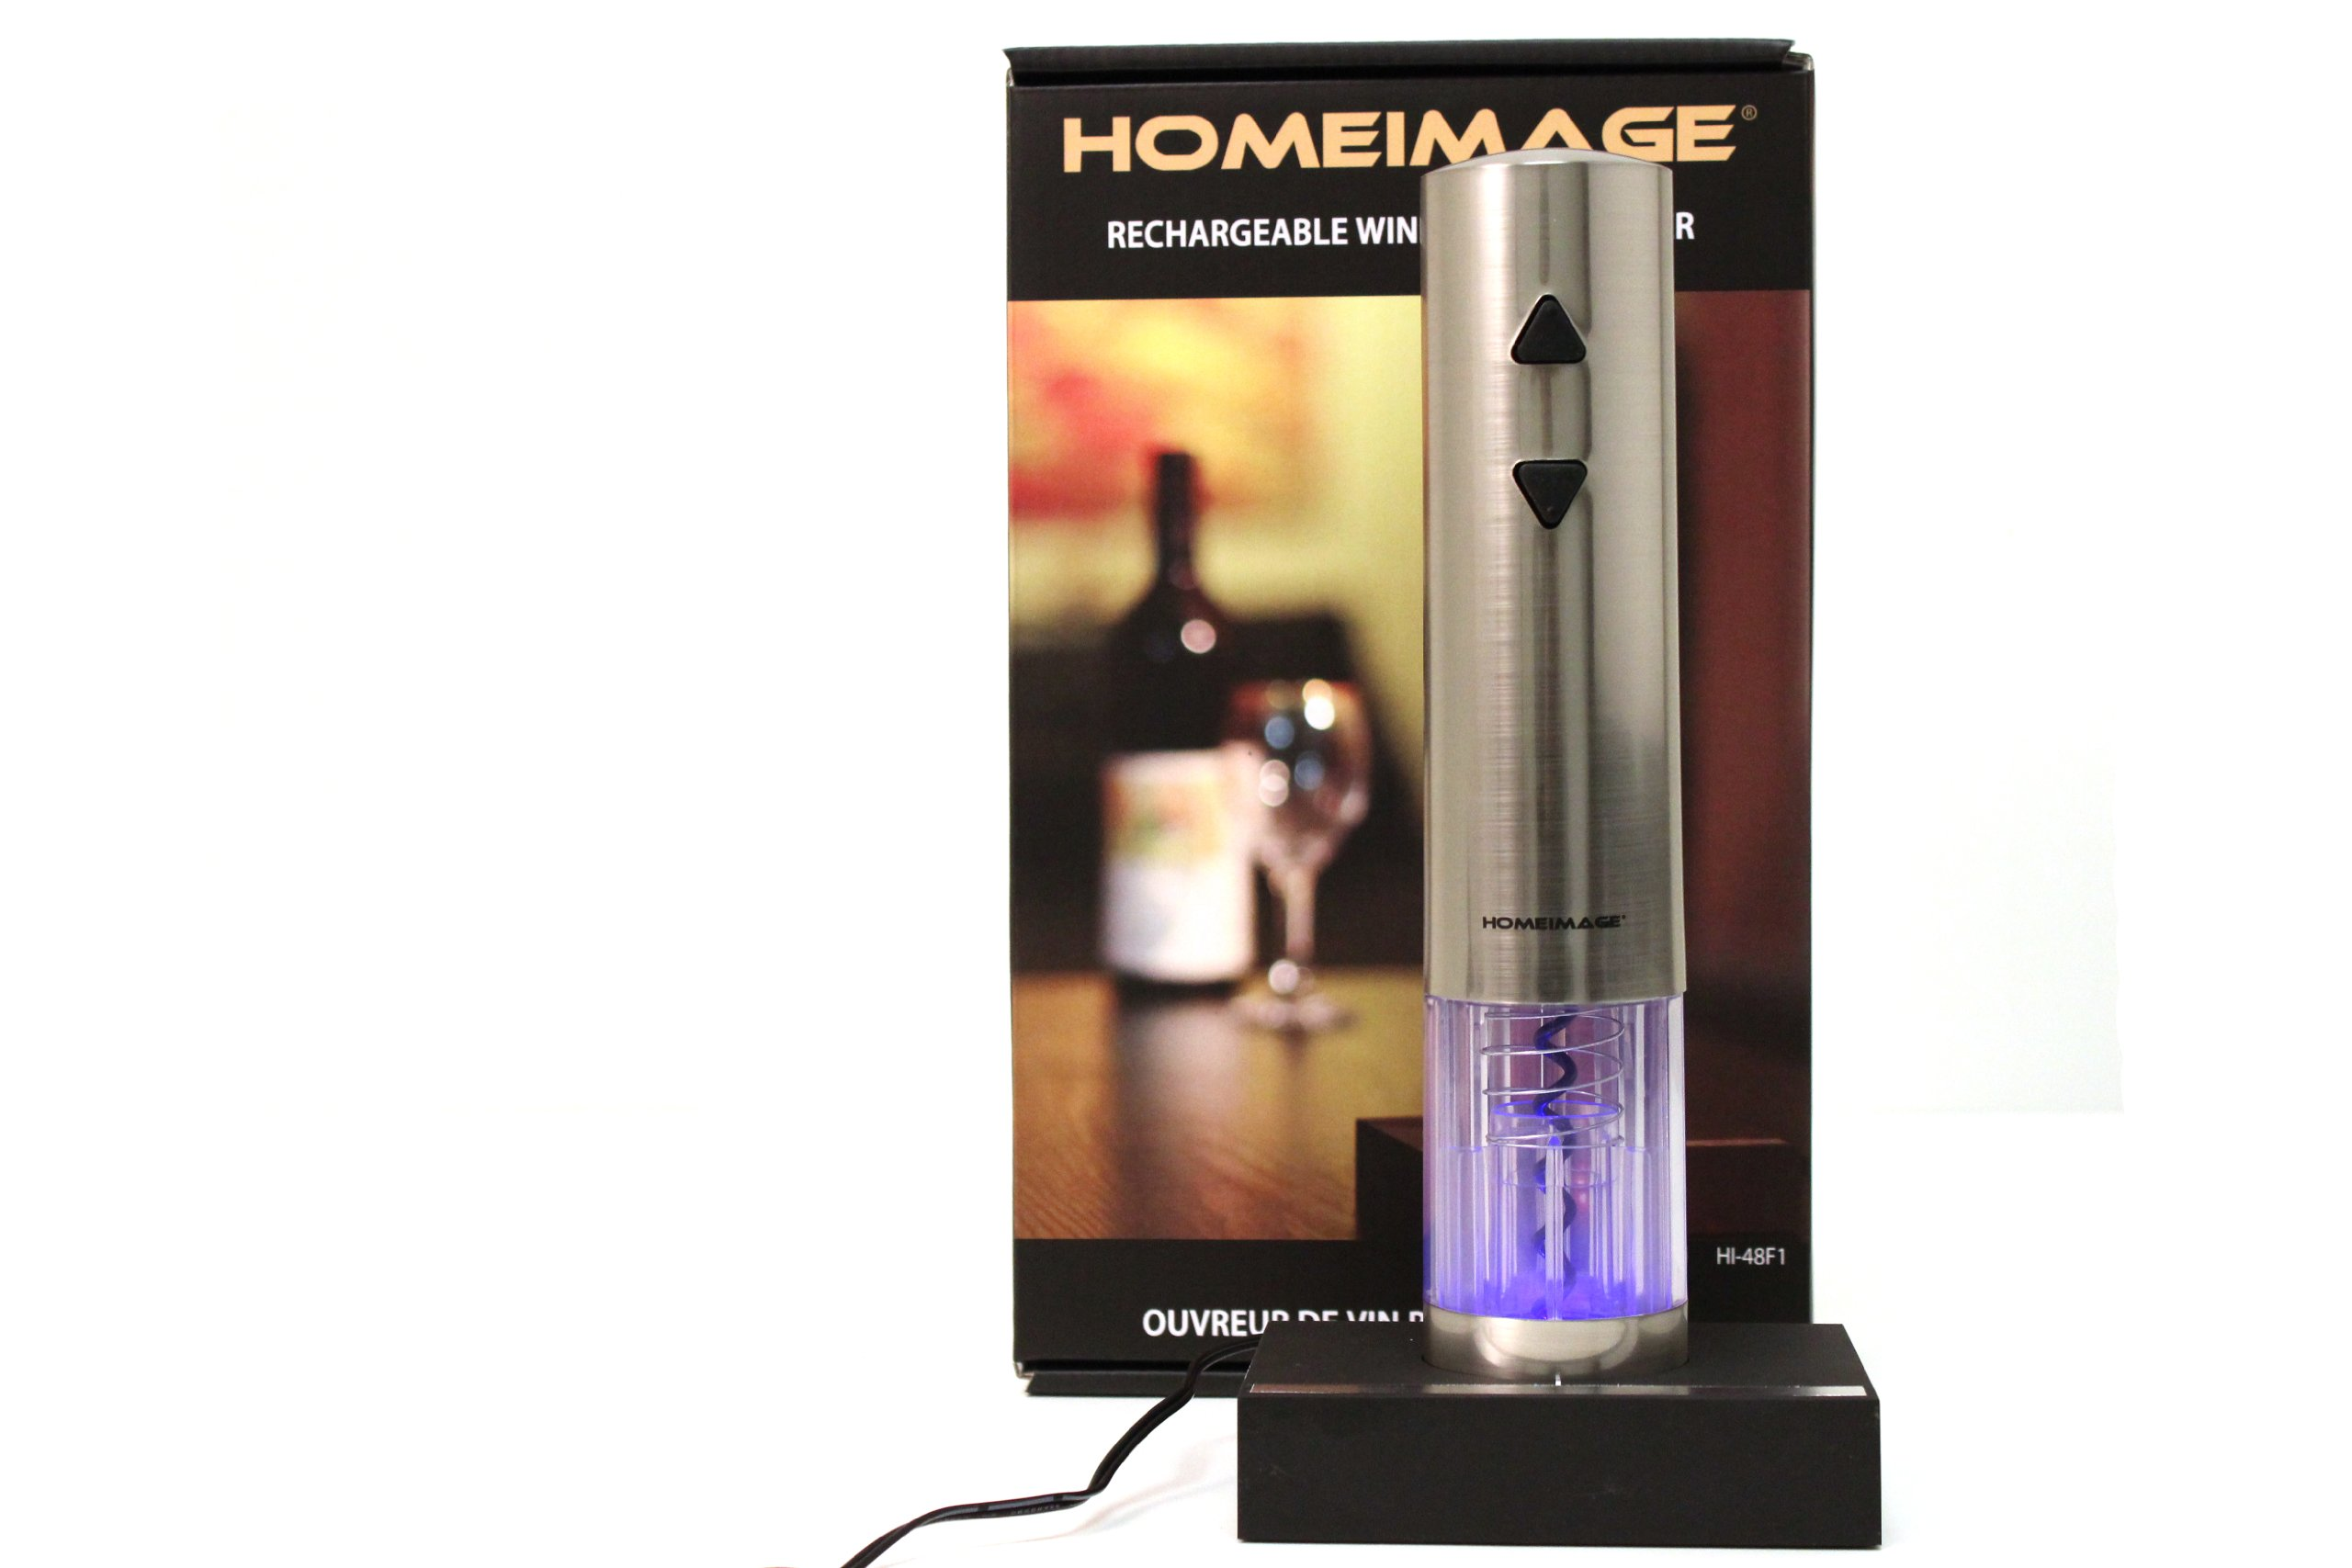 HOMEIMAGE Stainless steel Electric Wine Bottle Opener HI- 48F1 by HOMEIMAGE